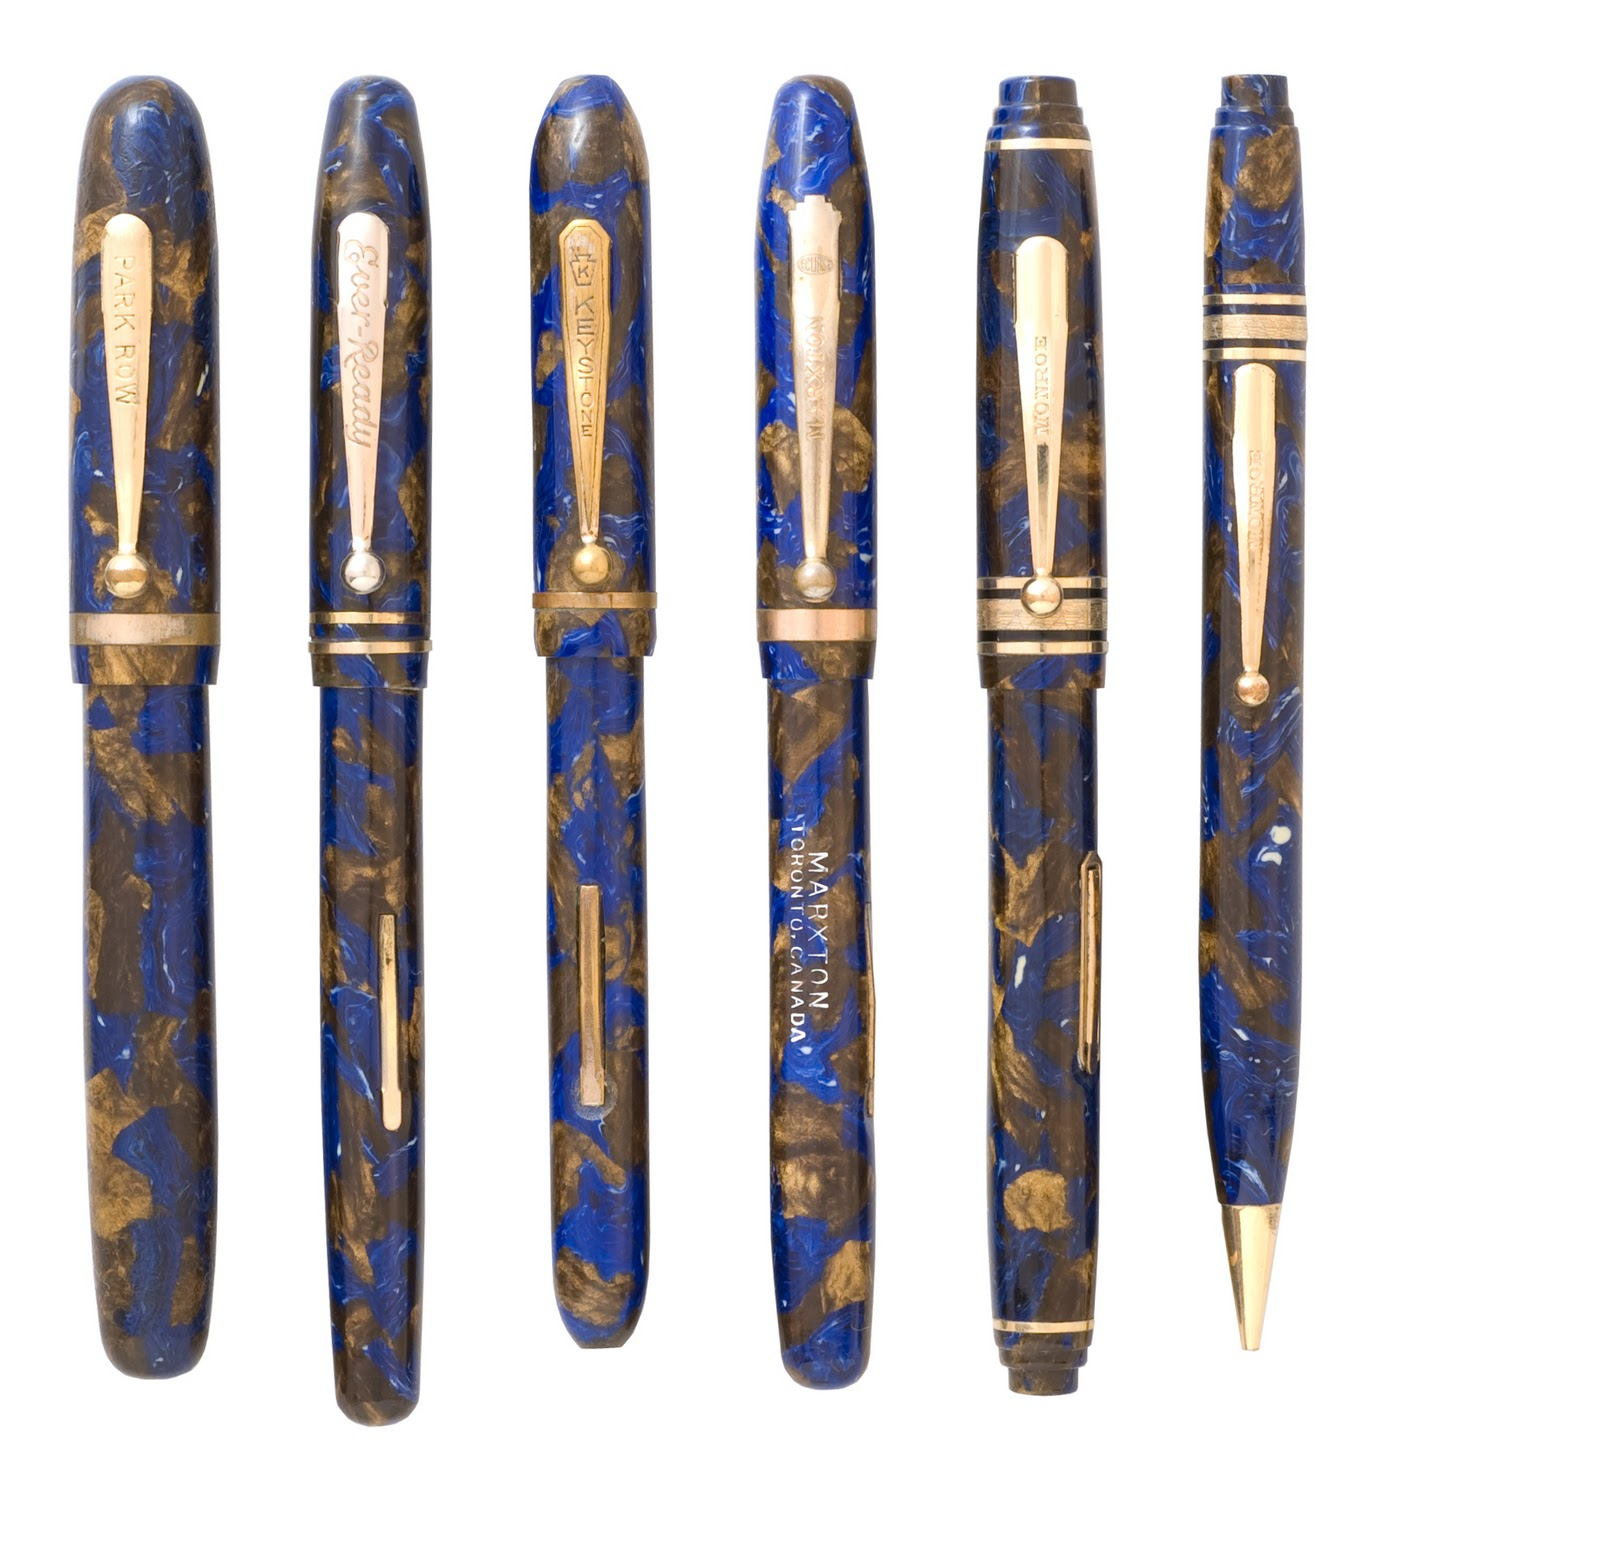 old fountain pens just for fun blue and bronze or brown and blue